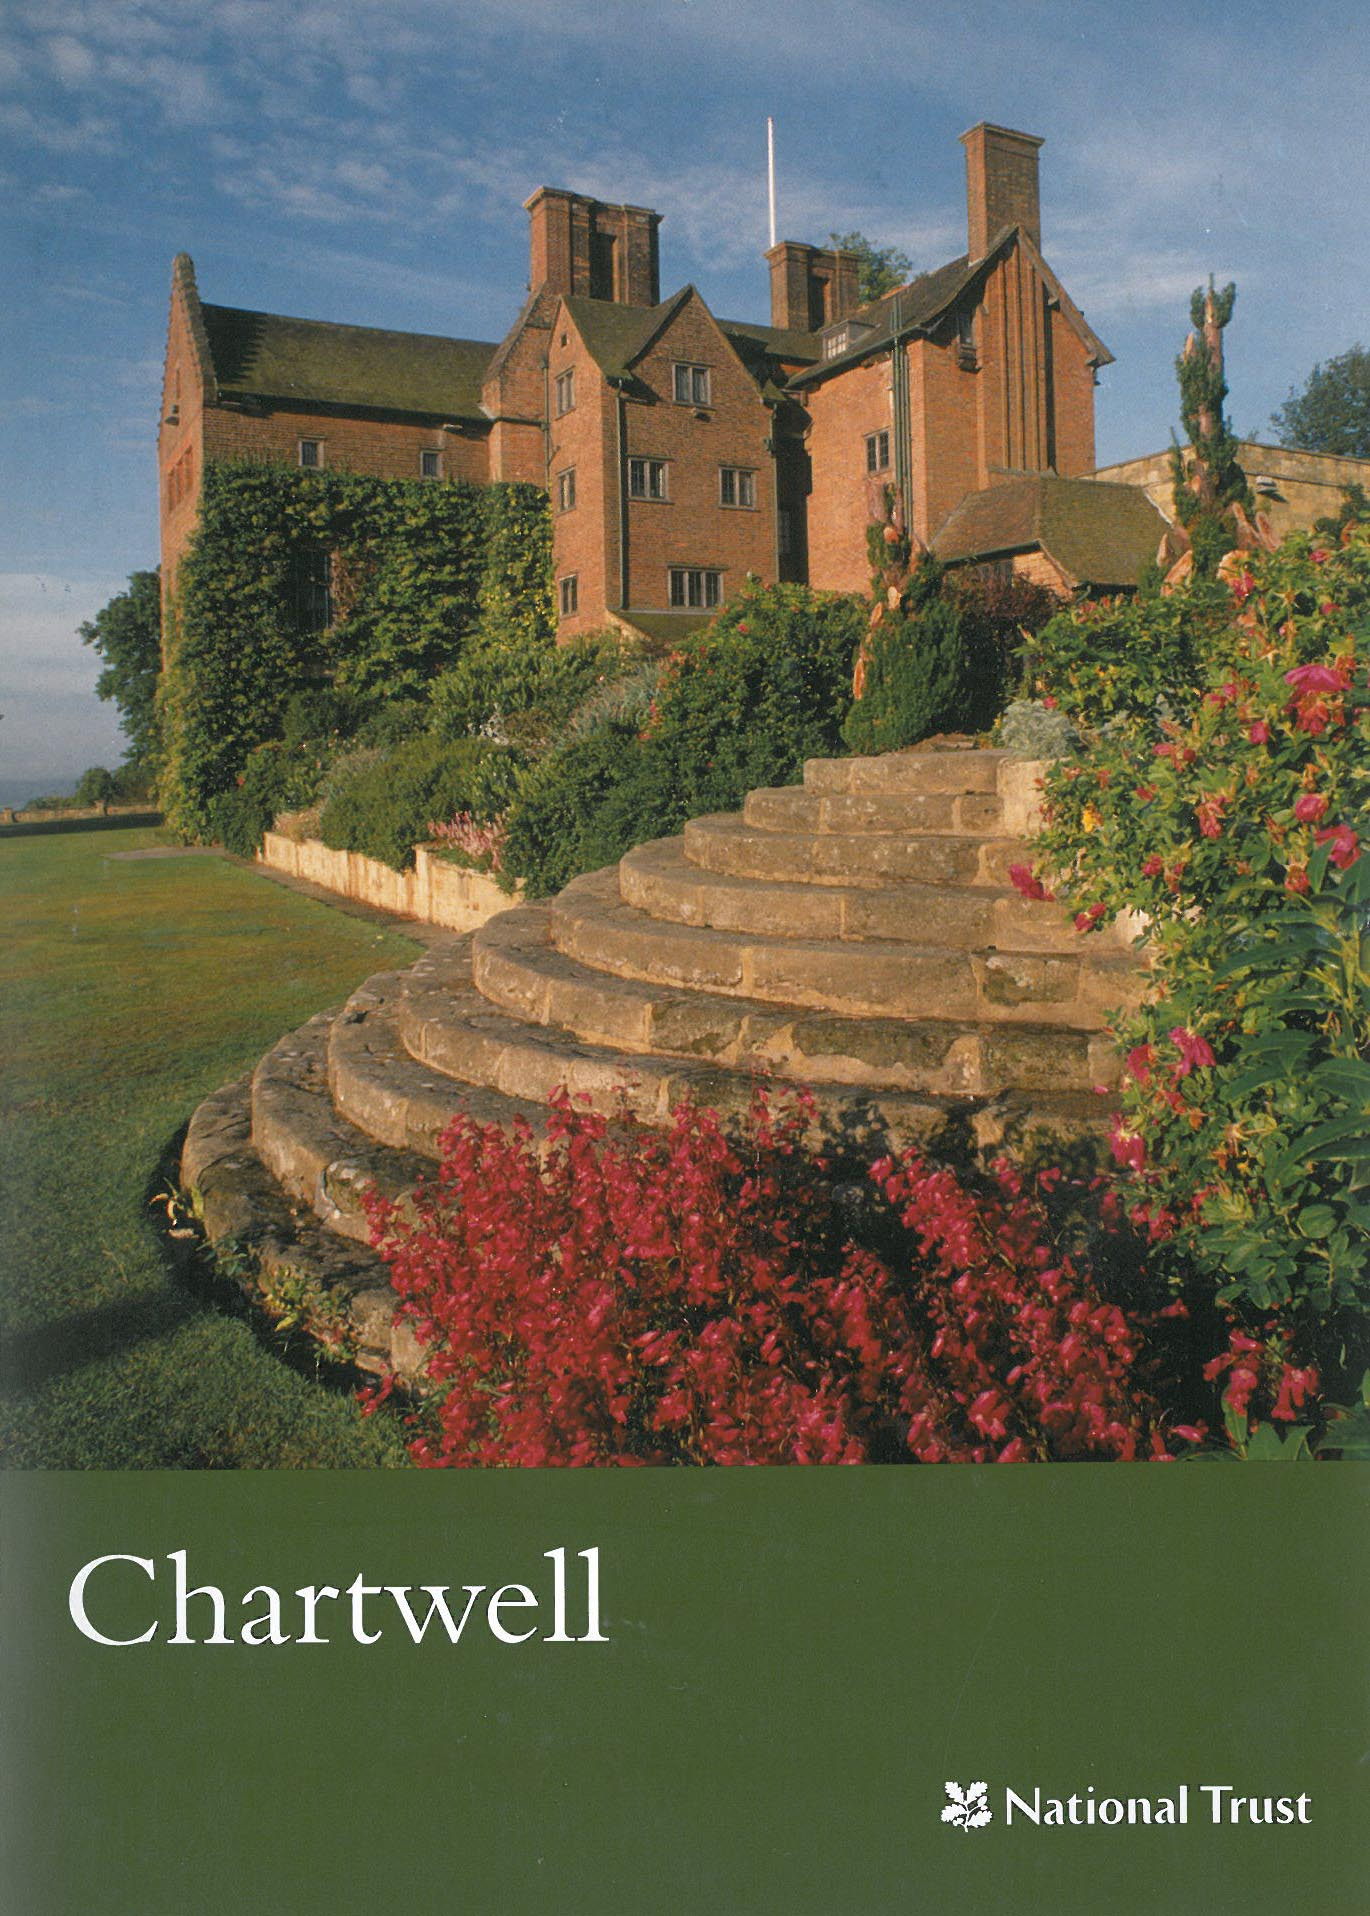 Chartwell, where Winston and Clementine Churchill lived for over 40 years. Image courtesy of The National Trust.